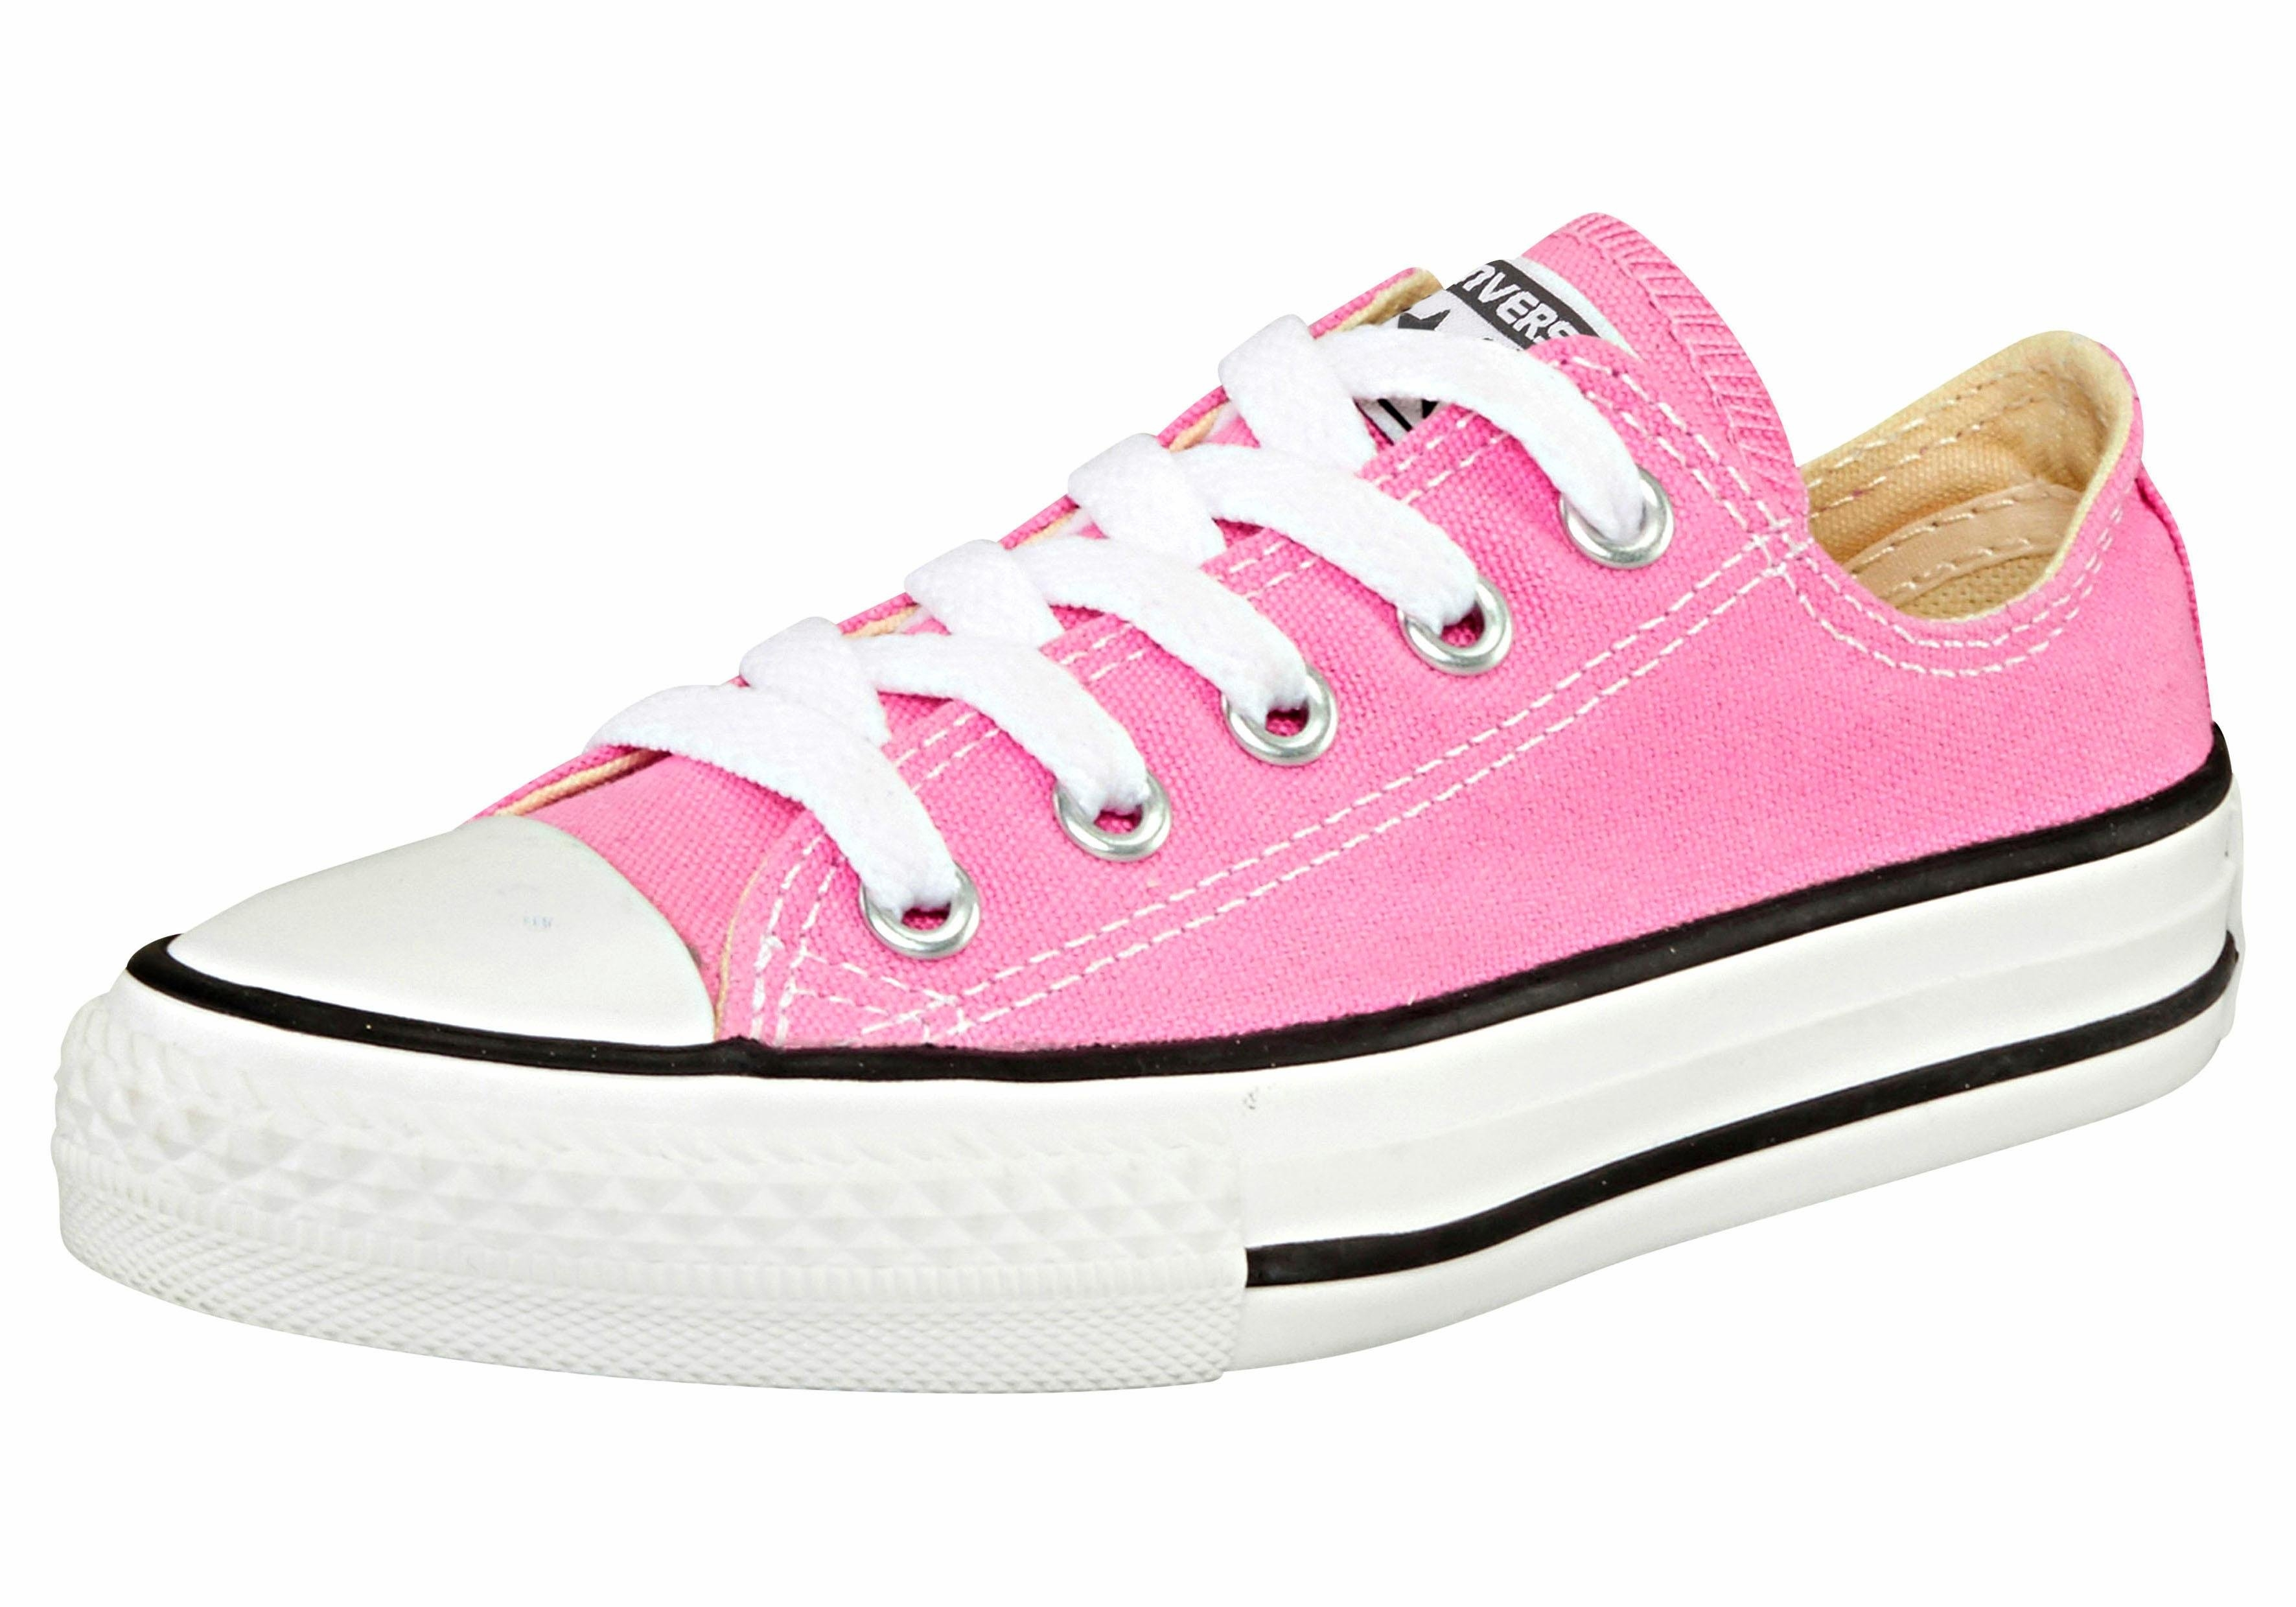 589a38cad74 ... Converse sneakers »Chuck Taylor All Star PC Boot Hi«, Converse sneakers  »Chuck Taylor All Star 2v«, Converse sneakers »Chuck Taylor All Star Ii  2v«, ...